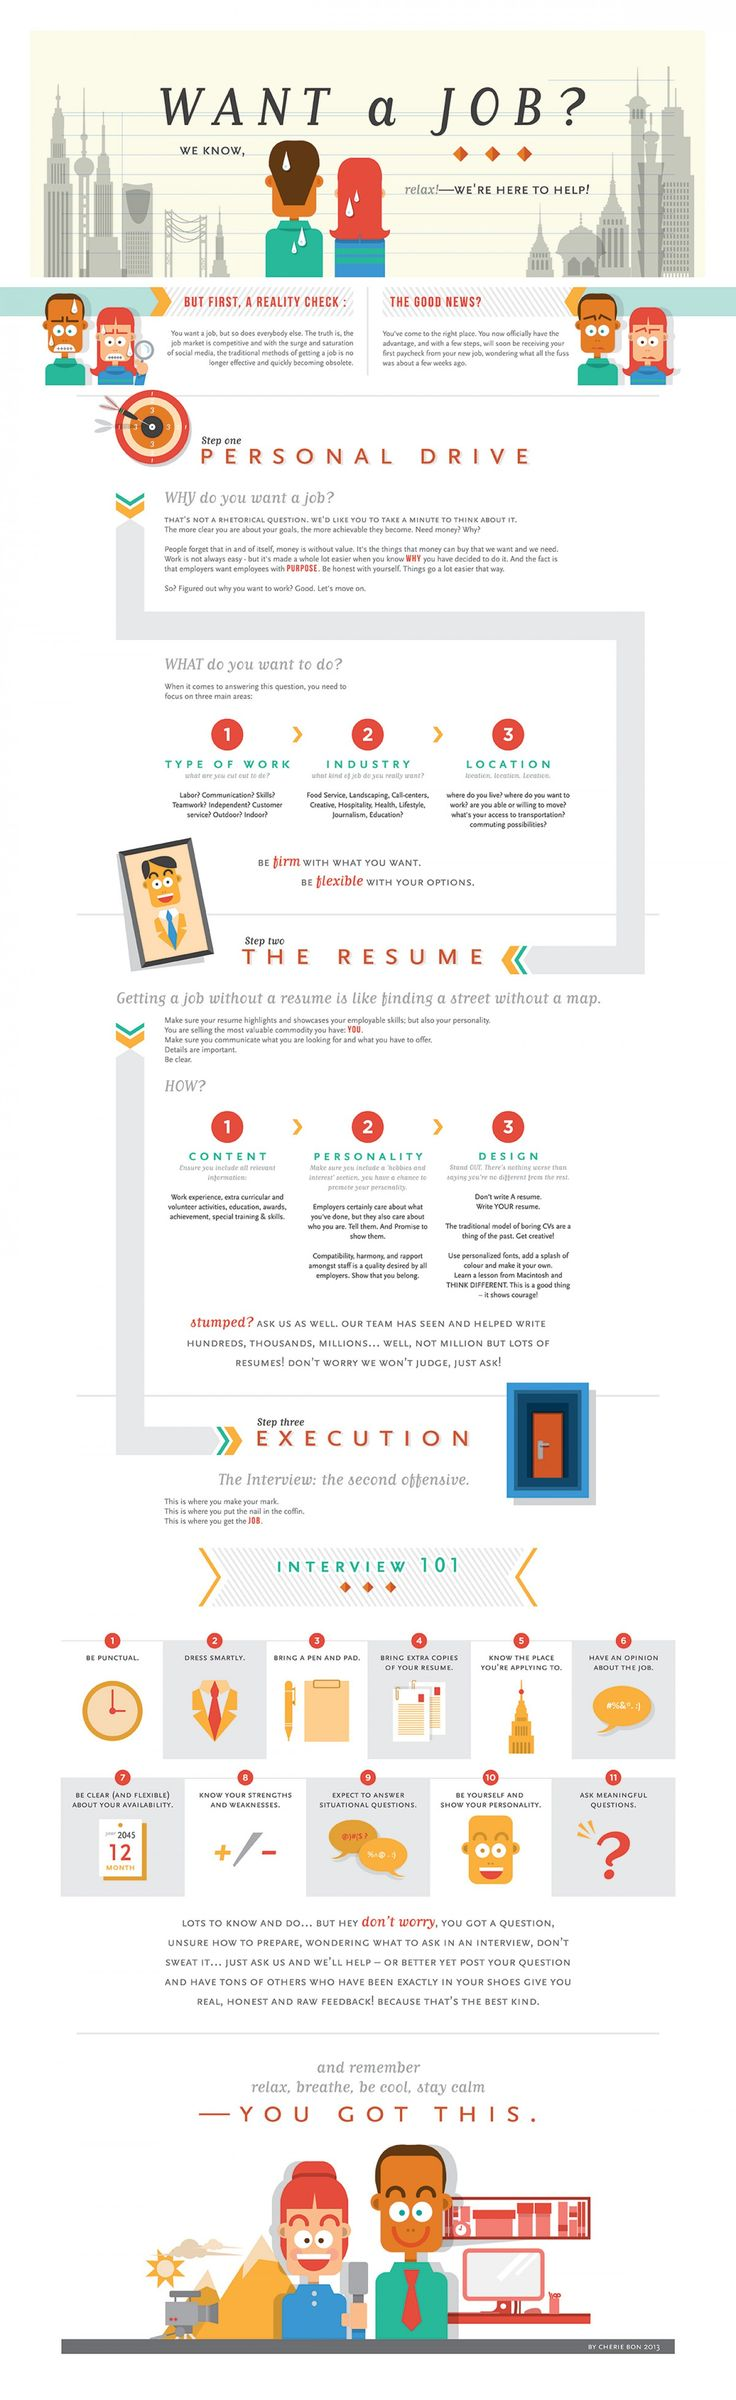 best ideas about get the job how to resume how want a job careers jobs